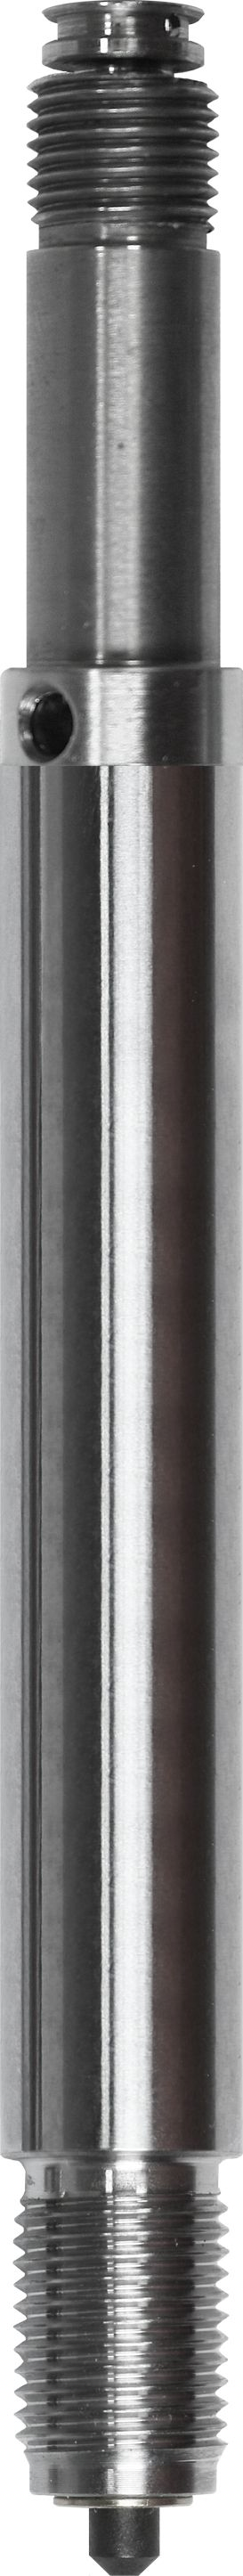 General Shaft Assembly